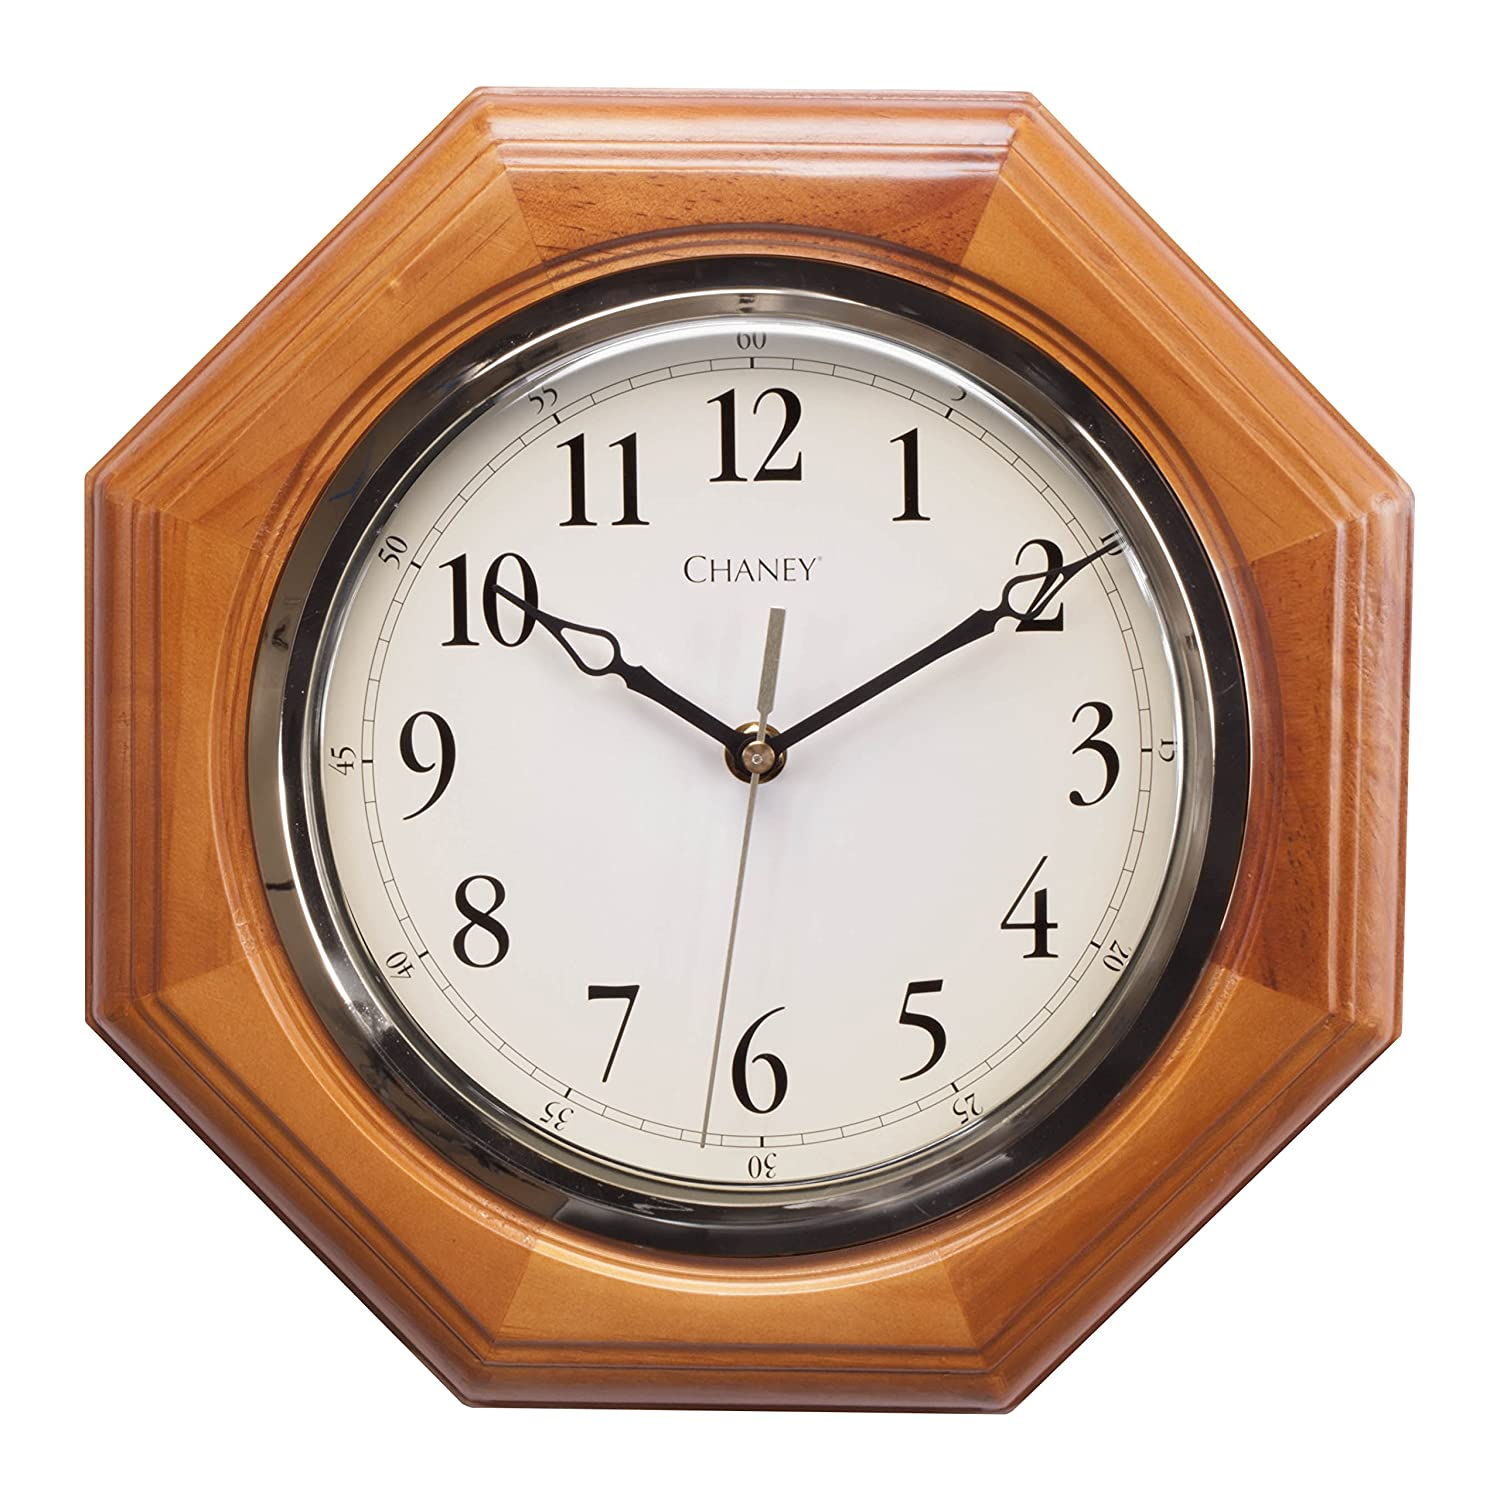 Amazon chaney 46101a1 12 inch octagon wood clock home kitchen amipublicfo Choice Image